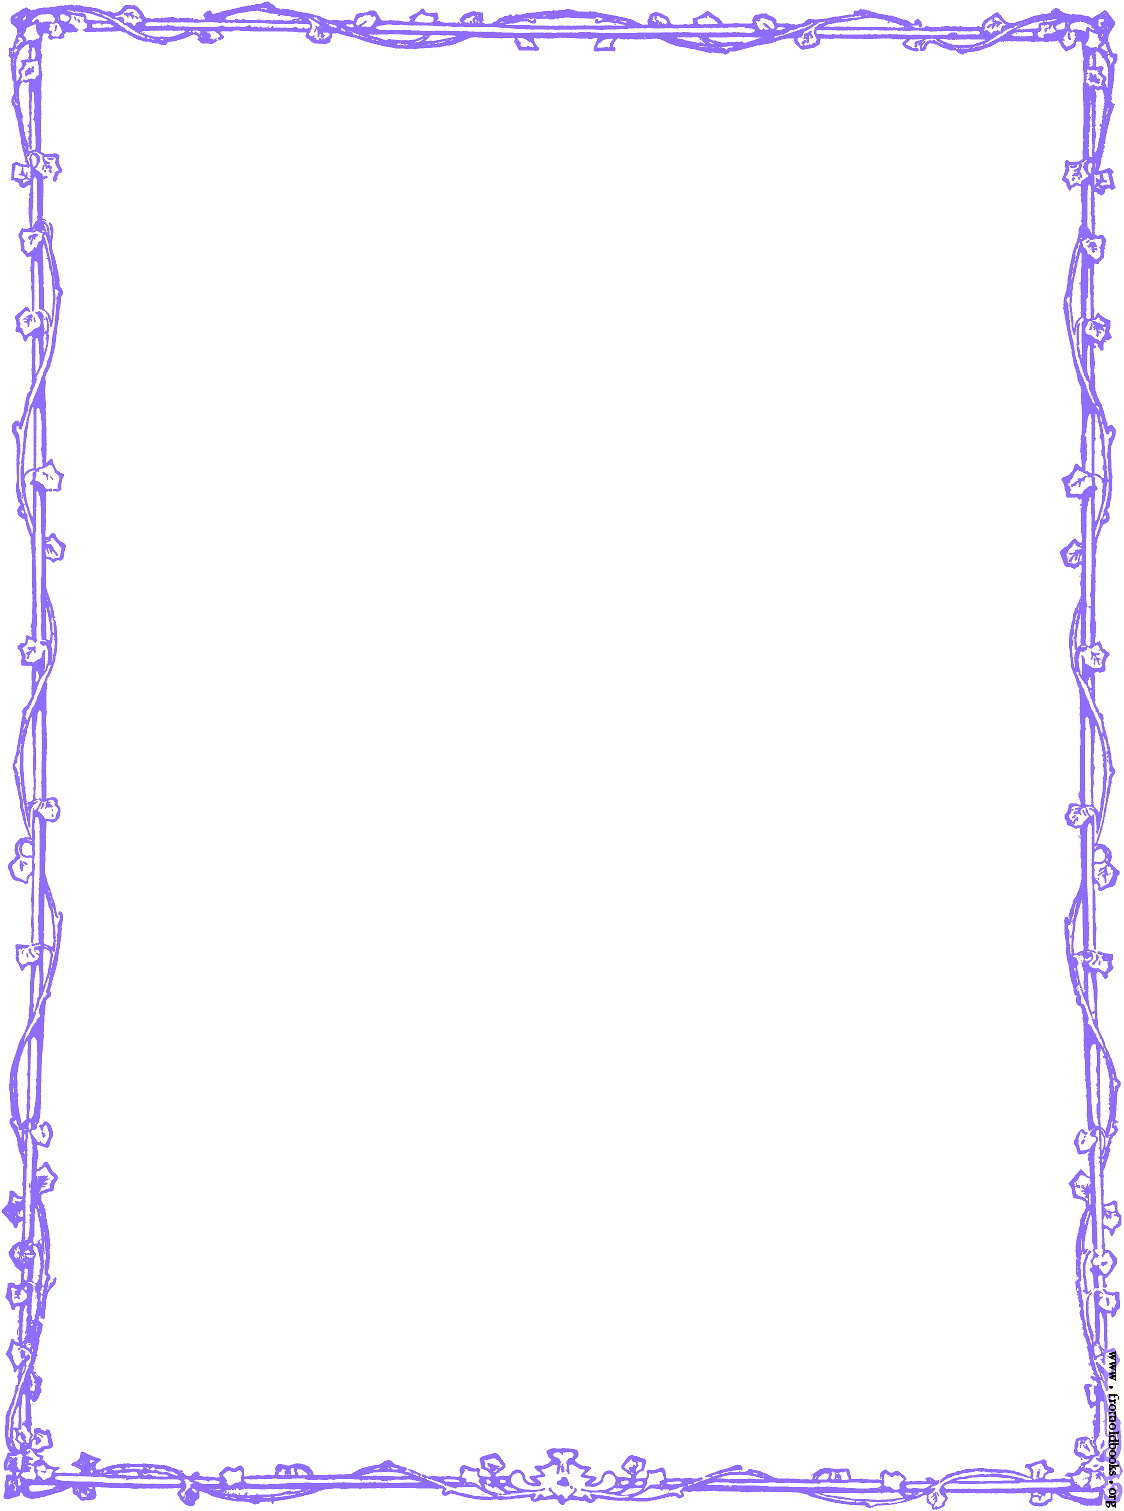 clip art page borders free download - photo #32